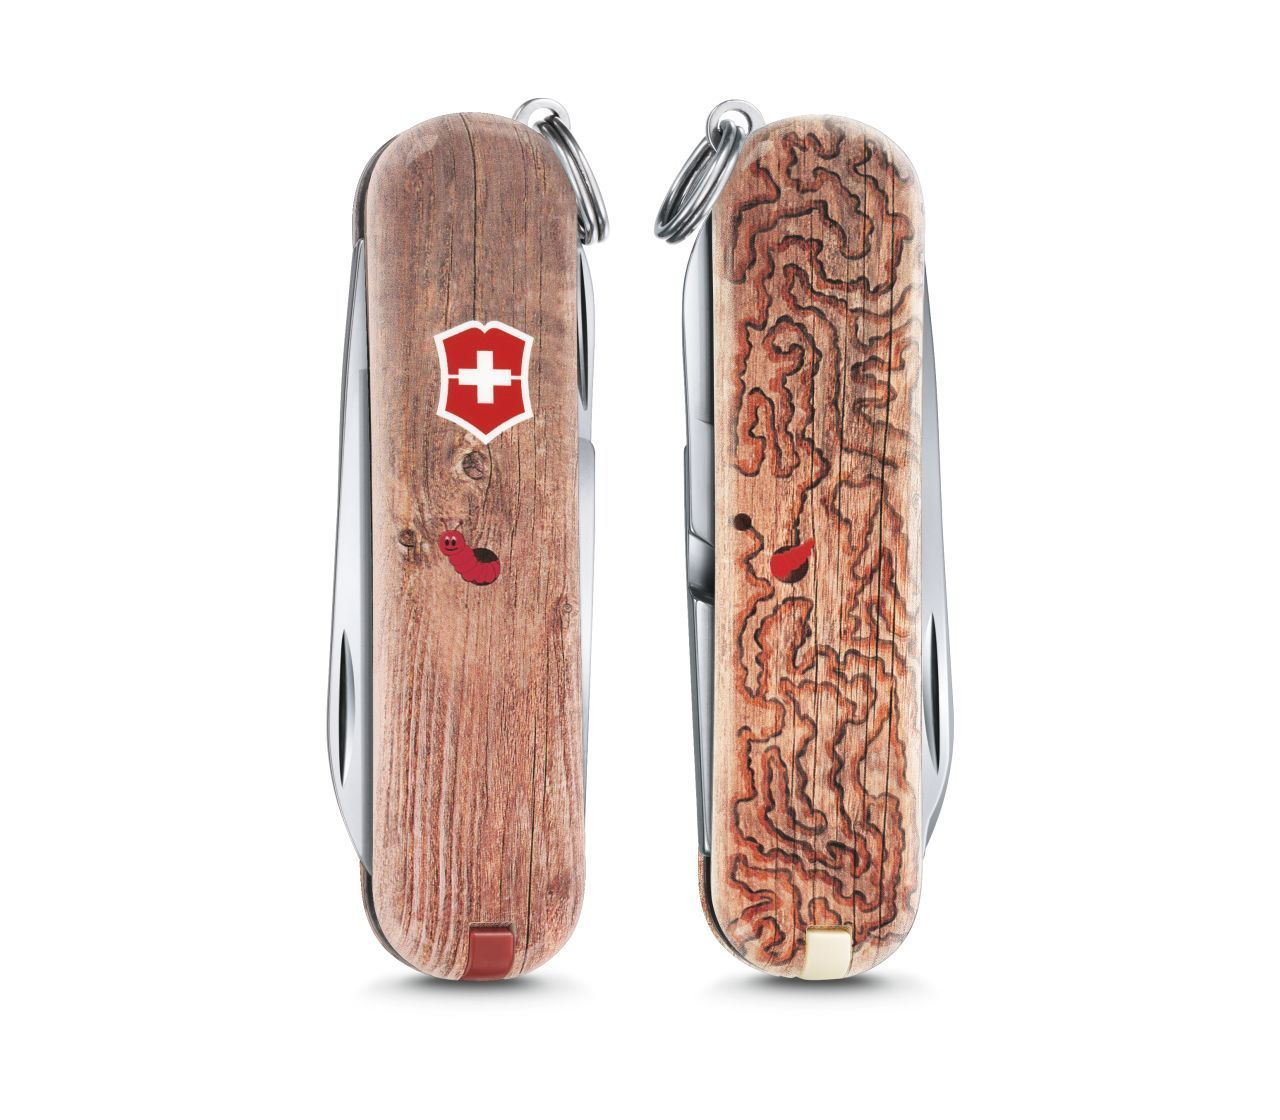 Складной нож Victorinox Classic limited edition 2017 Woodworm (0.6223.L1706) 58мм 7функций дерево нож складной rat™ 1 limited edition black blade carbon fiber handle d2 tool steel